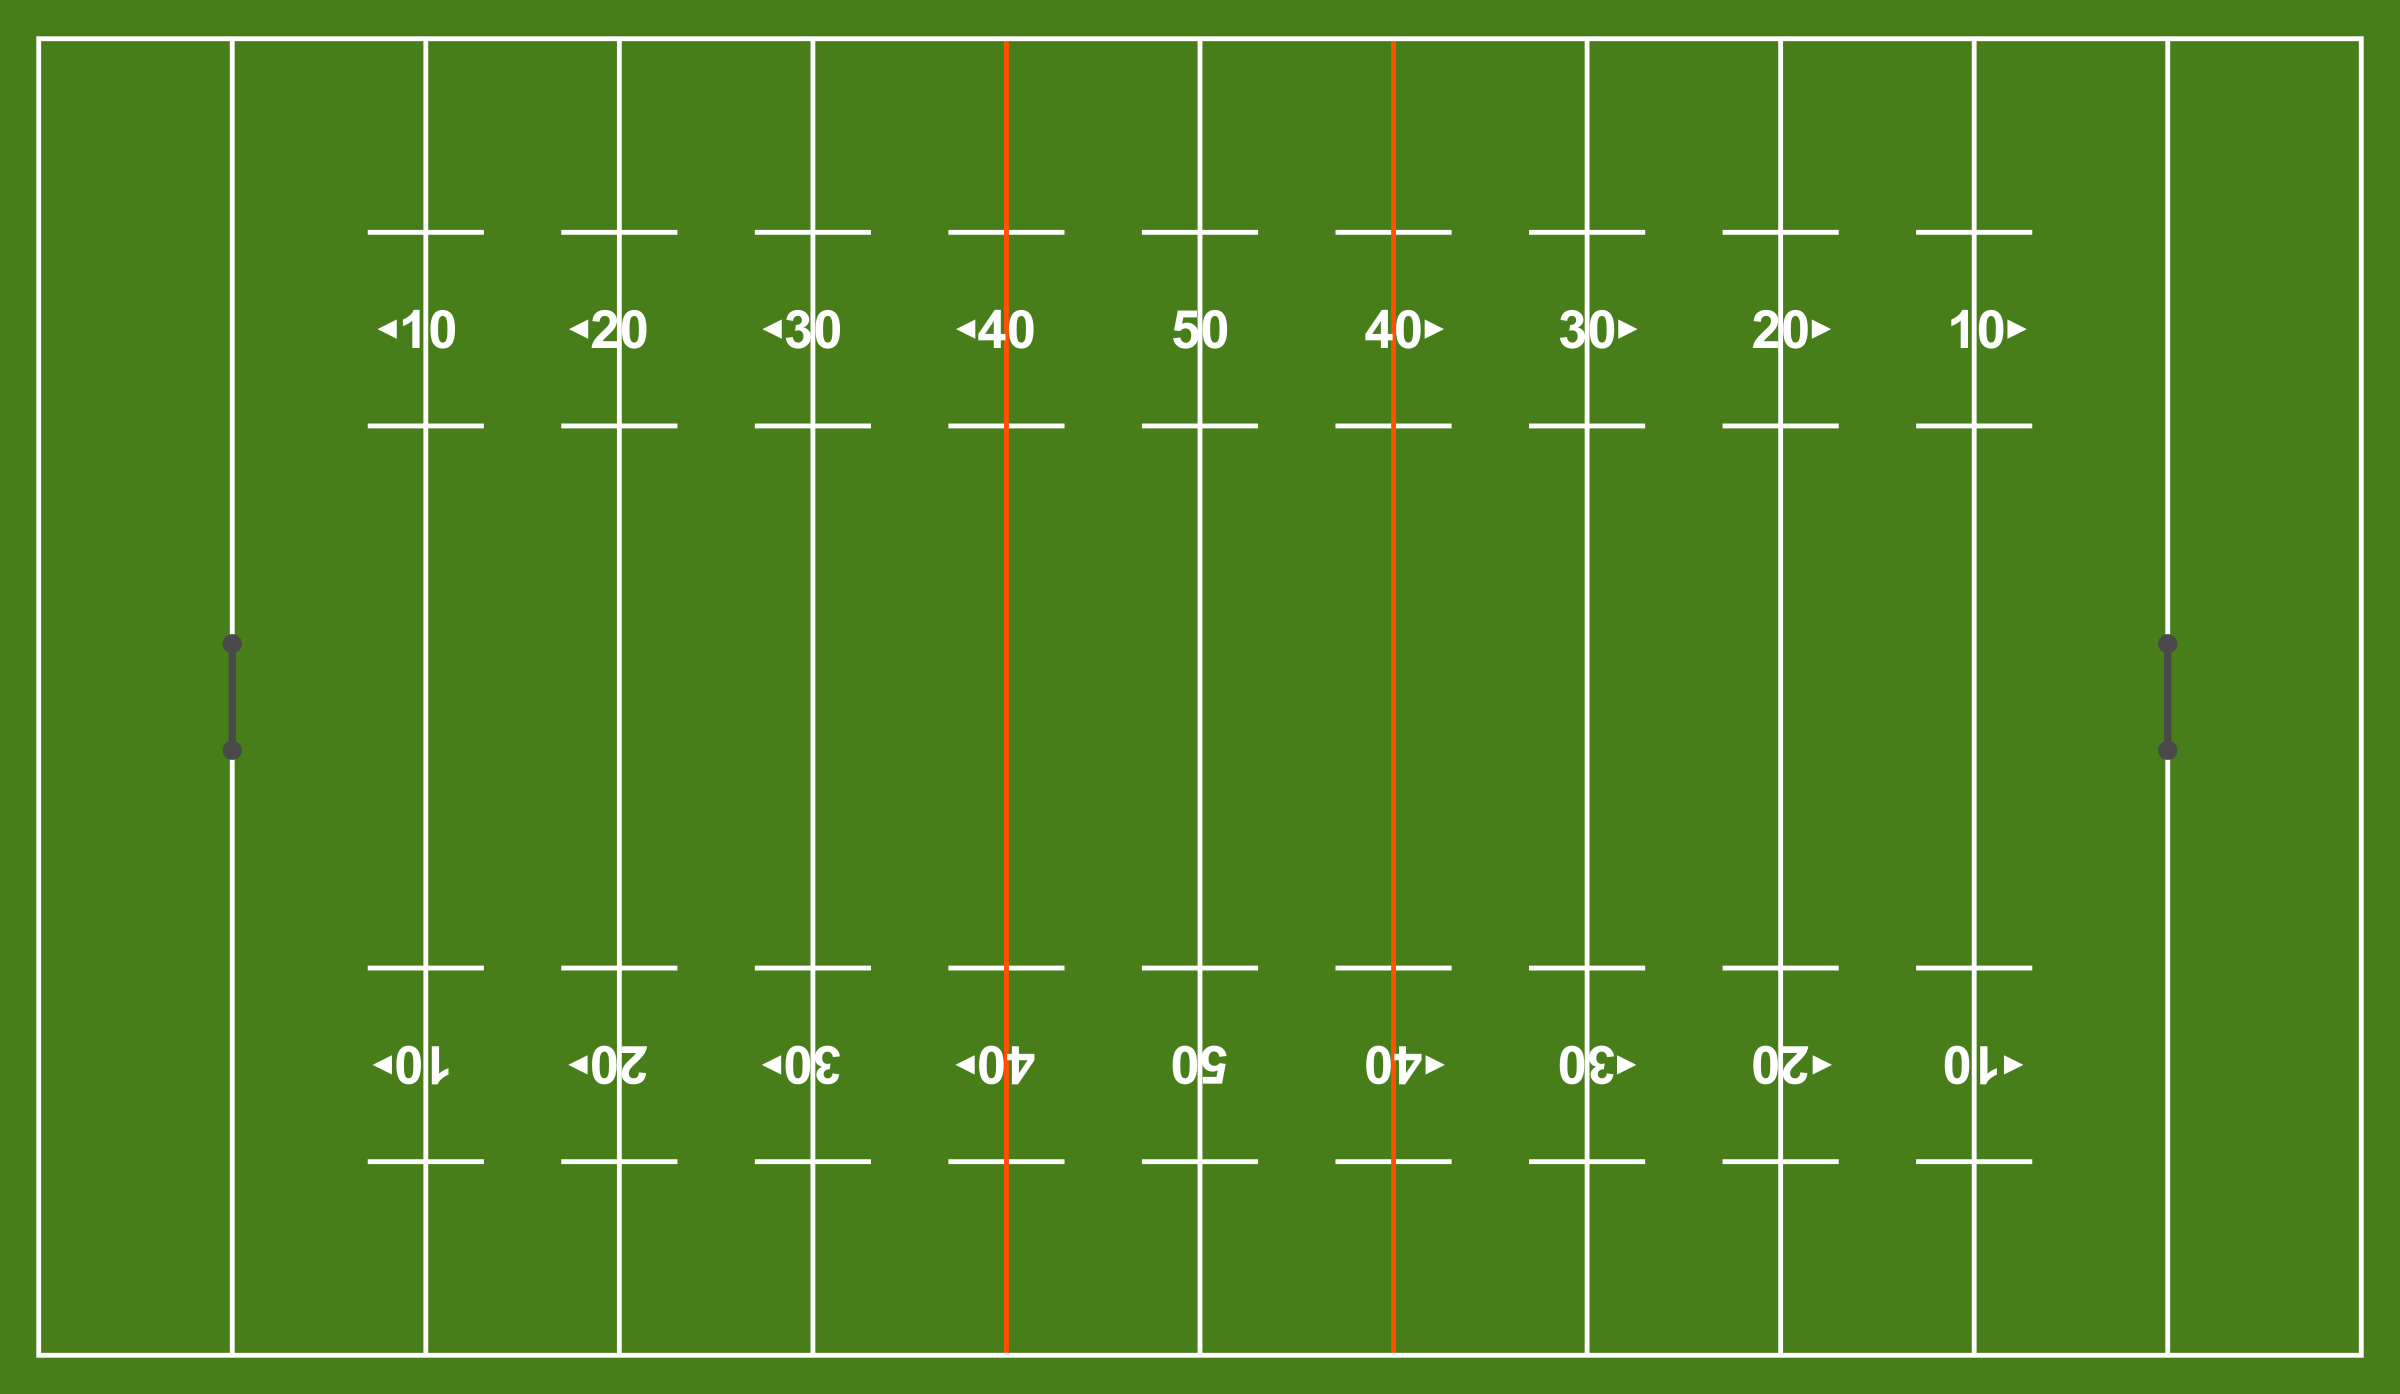 Rugby league pitch by Firkin